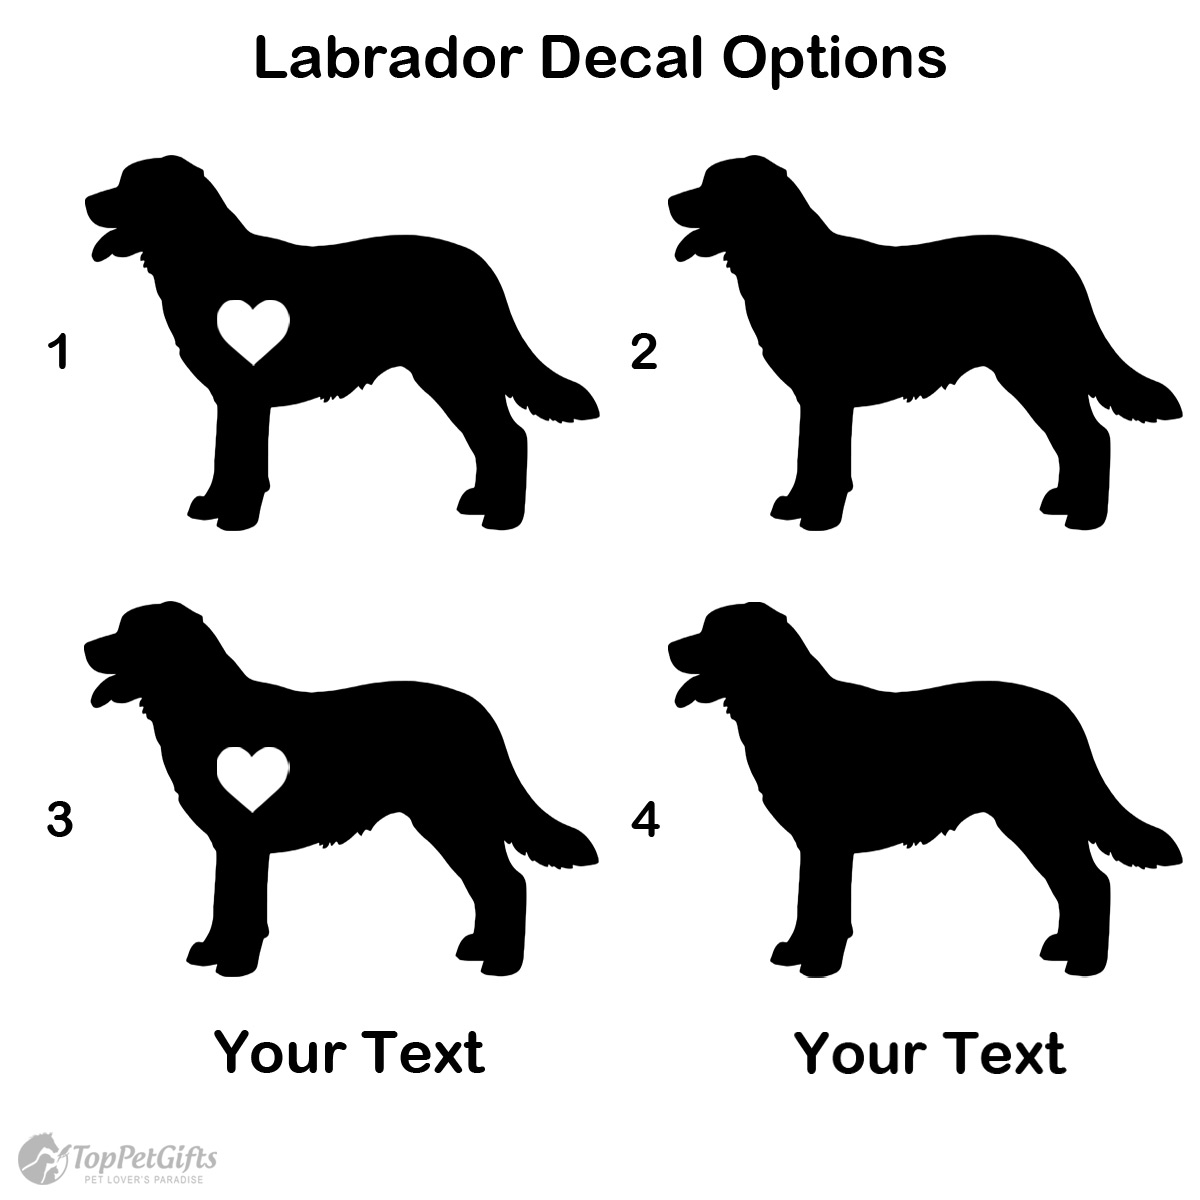 Personalized Labrador Decal